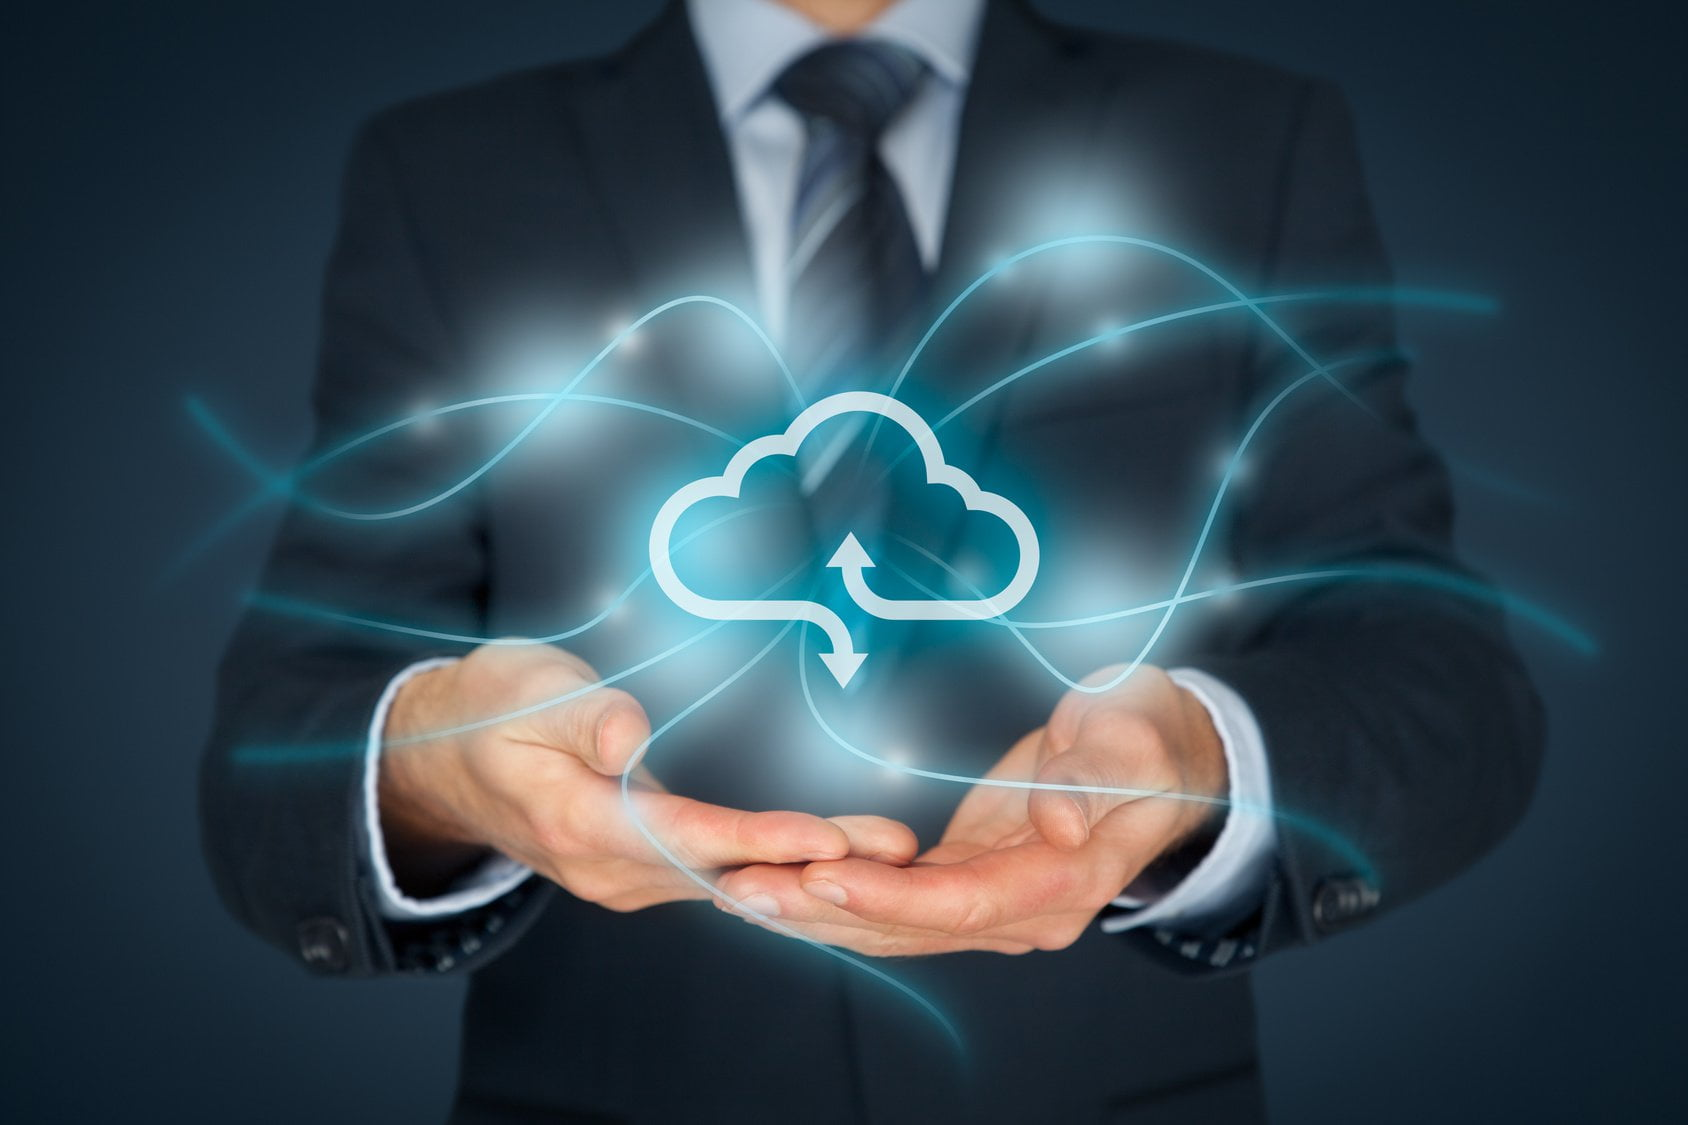 When Litigation Threatens Innovation in the Cloud, Businesses Innovate Around the Law